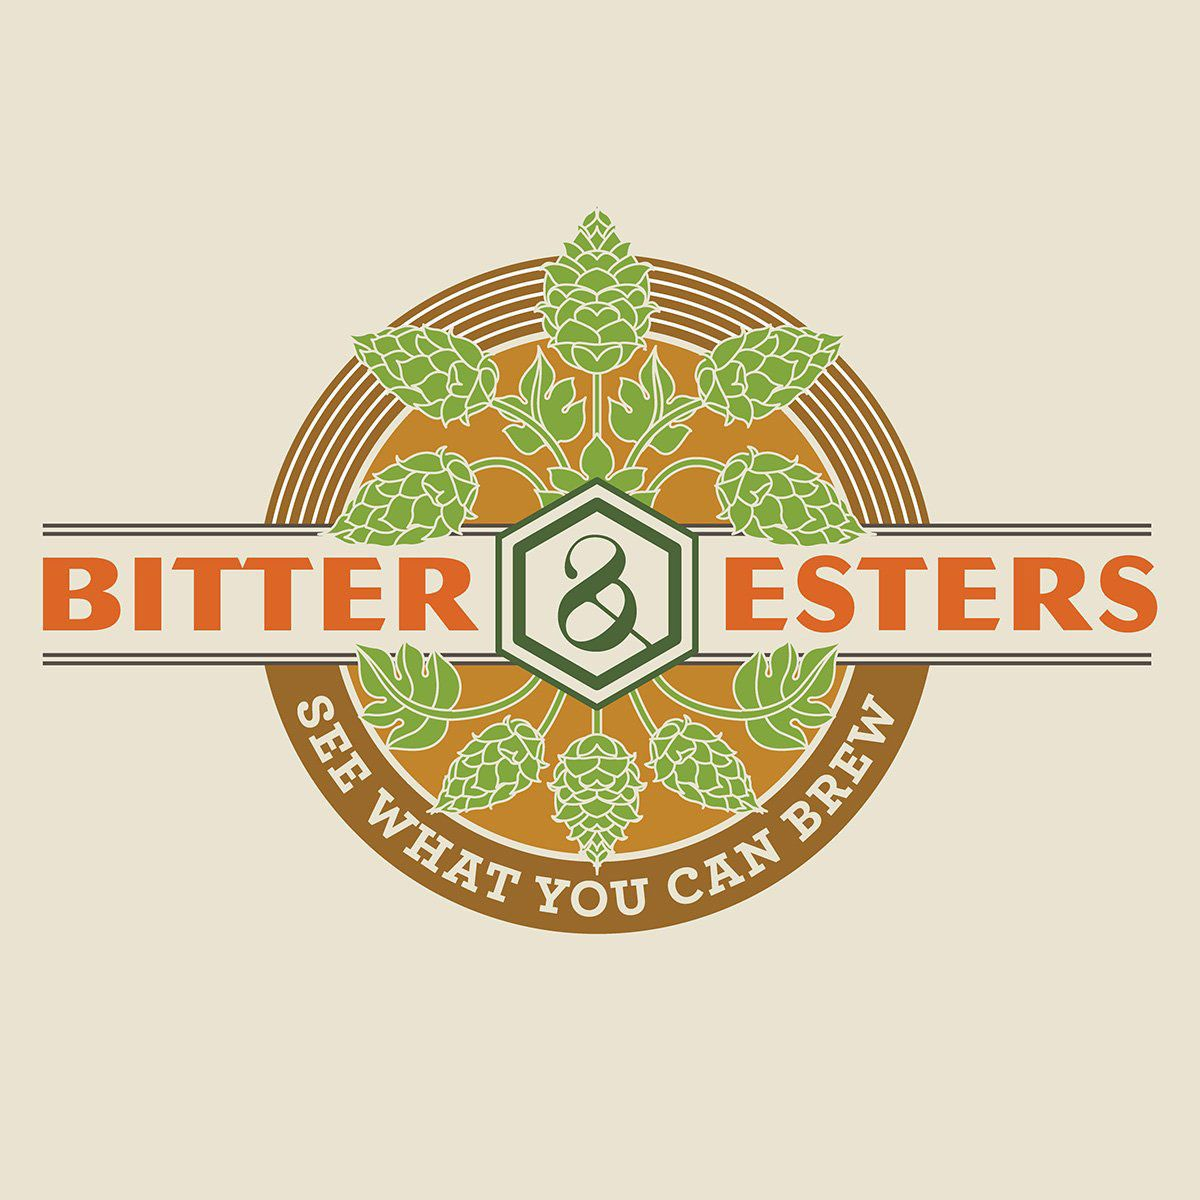 The Bitter & Esters logo